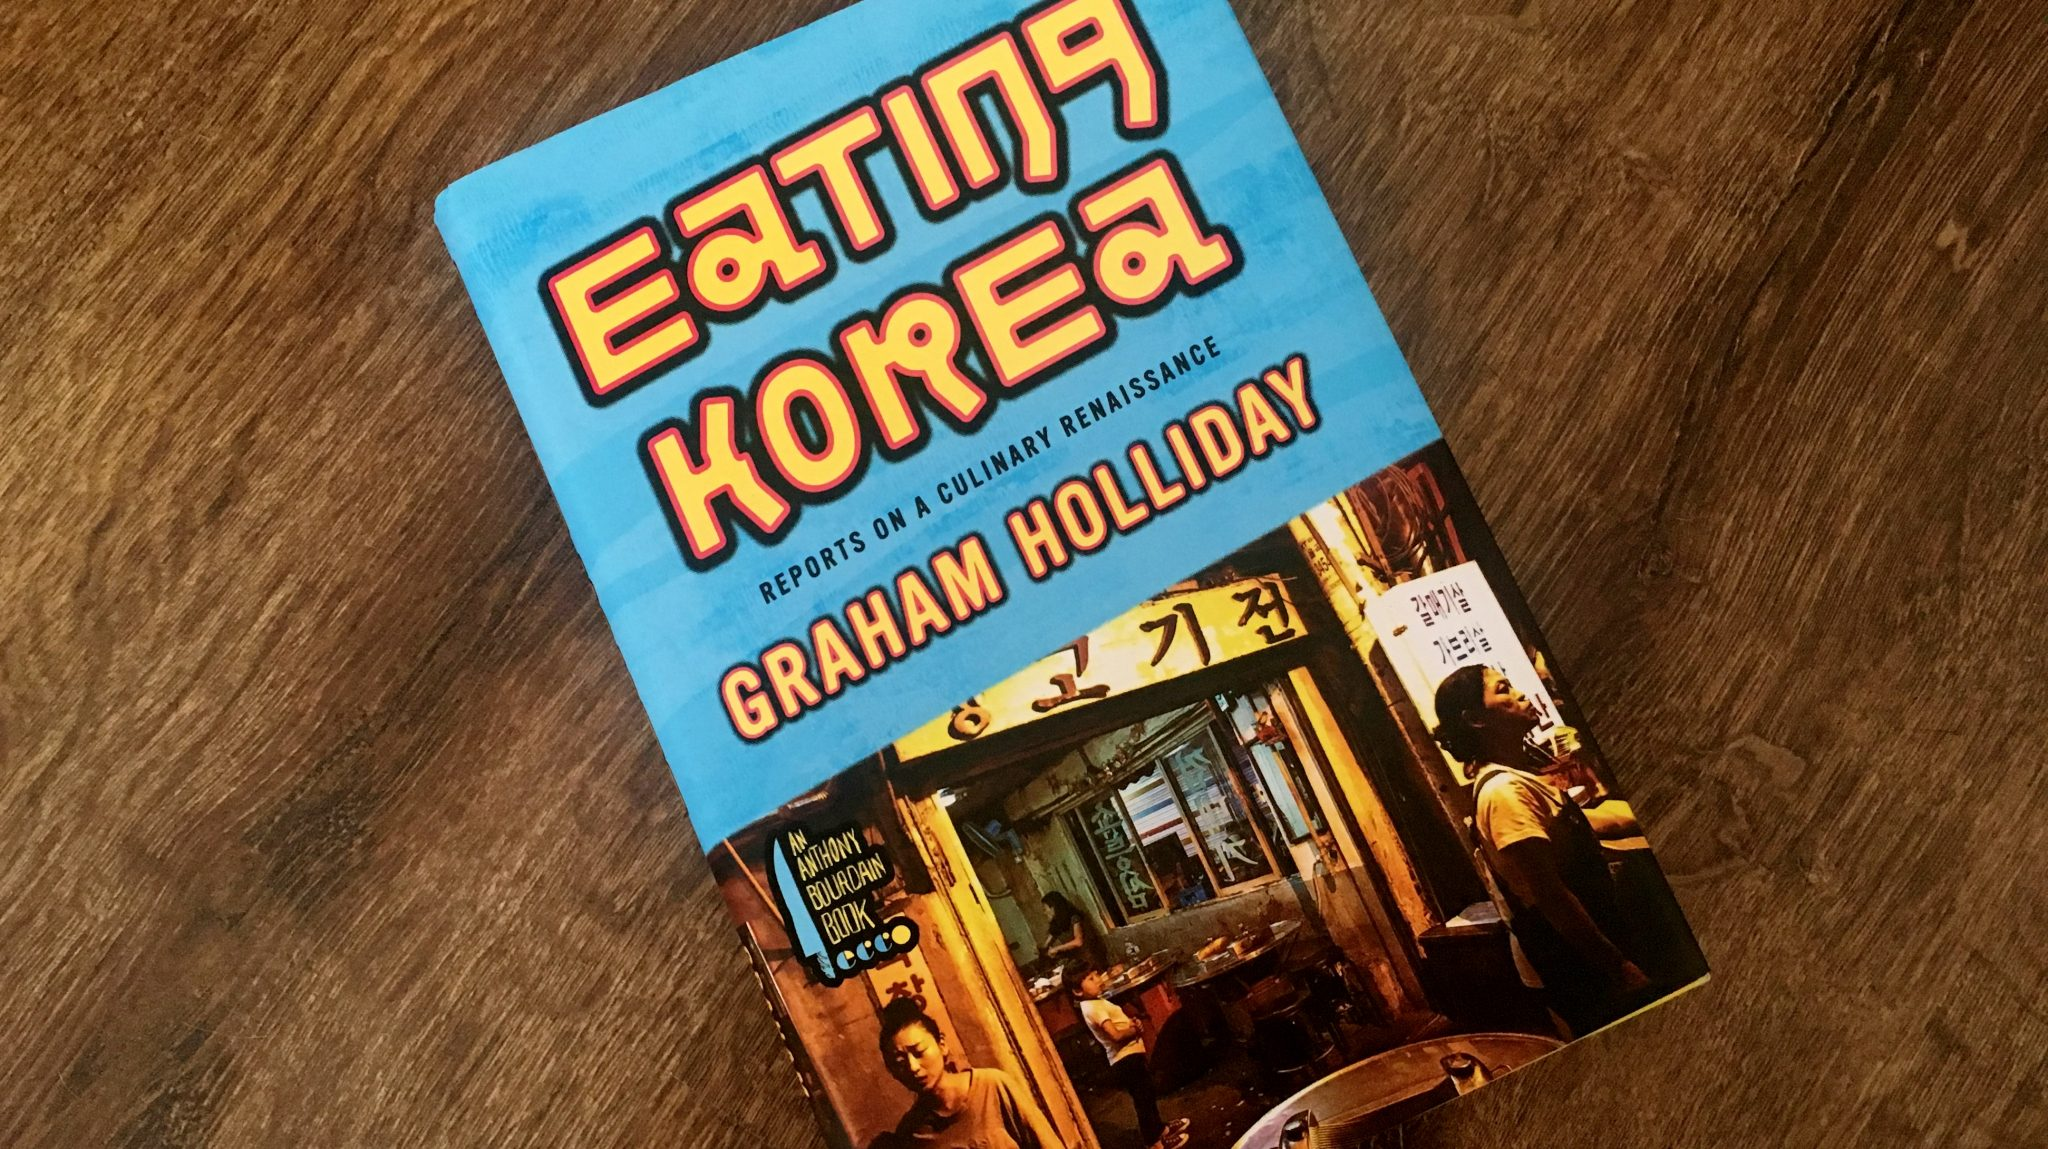 Leestip! Eating Korea: Reports on a Culinary Renaissance